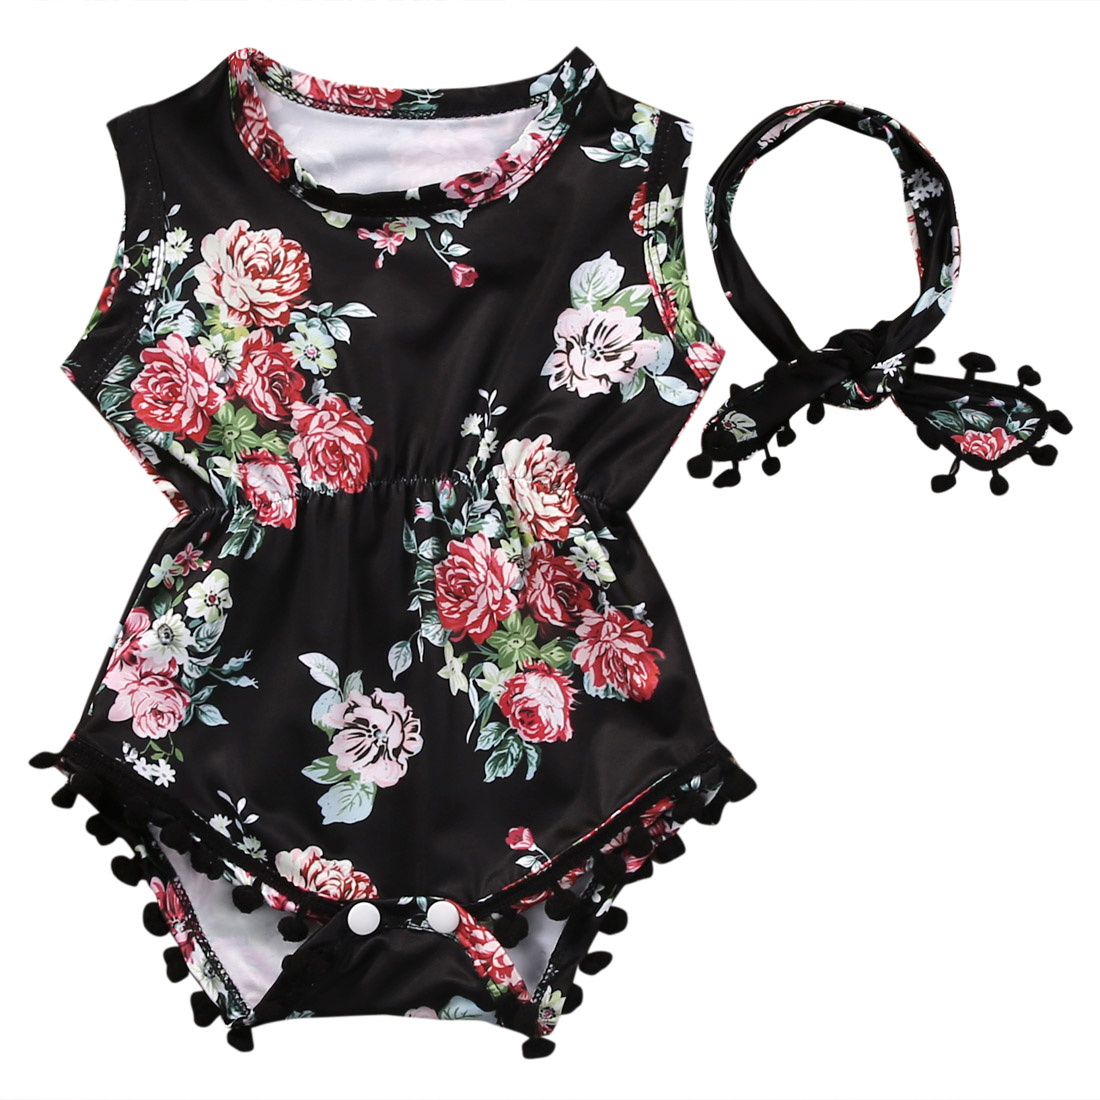 2Pcs Cute Baby Girls Floral Tassel   Romper   Sleeveless Jumper Jumpsuit Headband Outfits Clothes Sunsuit